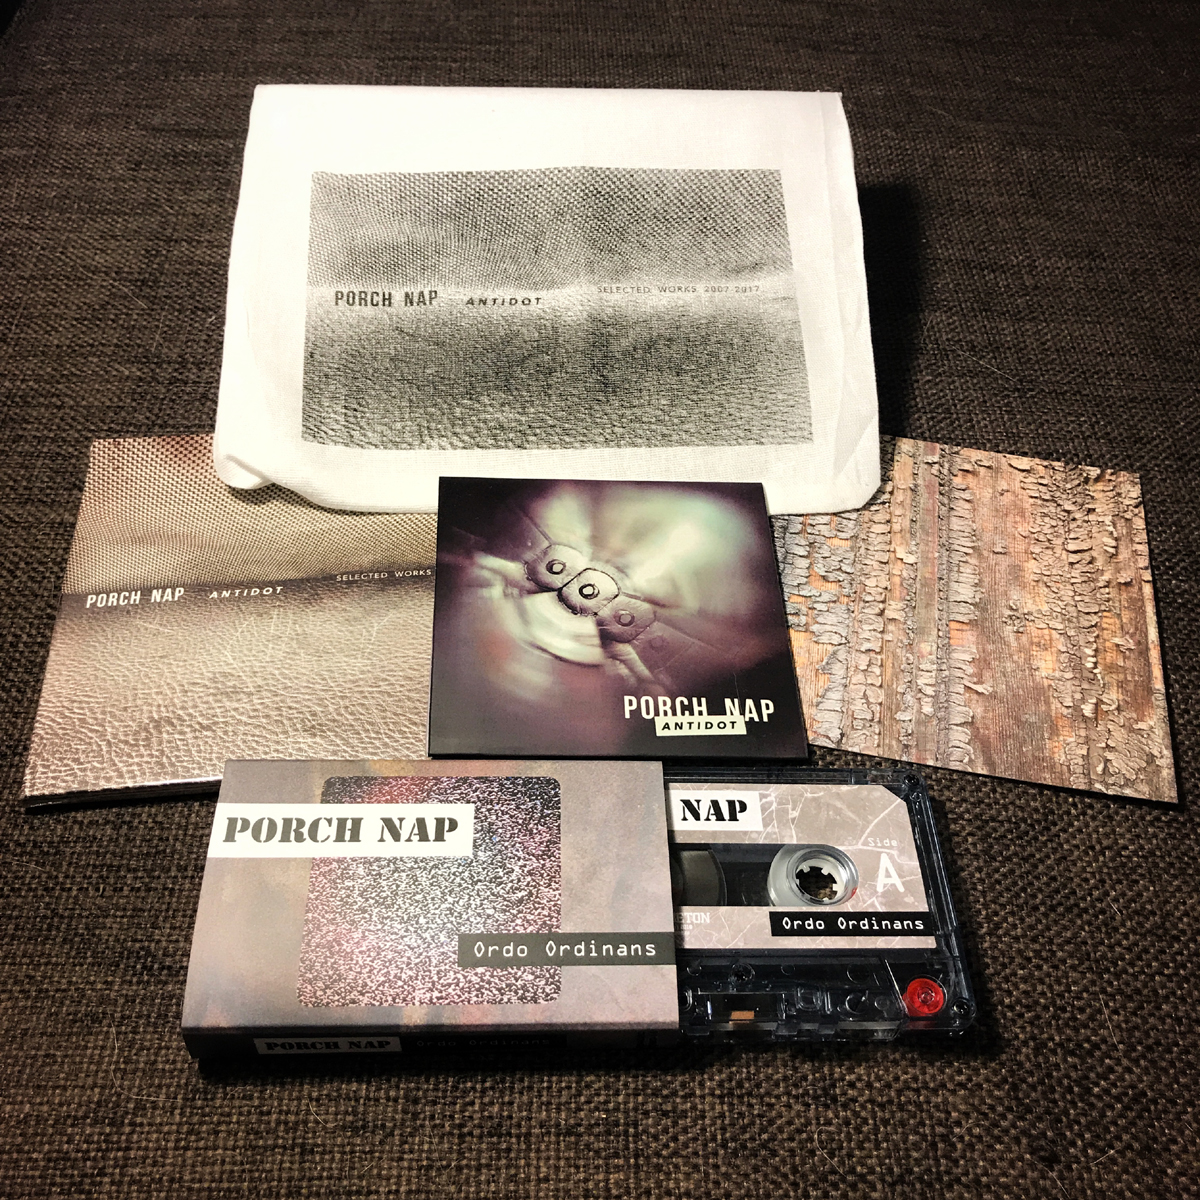 Porch Nap - Antidot (Selected Works 2007-2017) (CD, Special Edition)